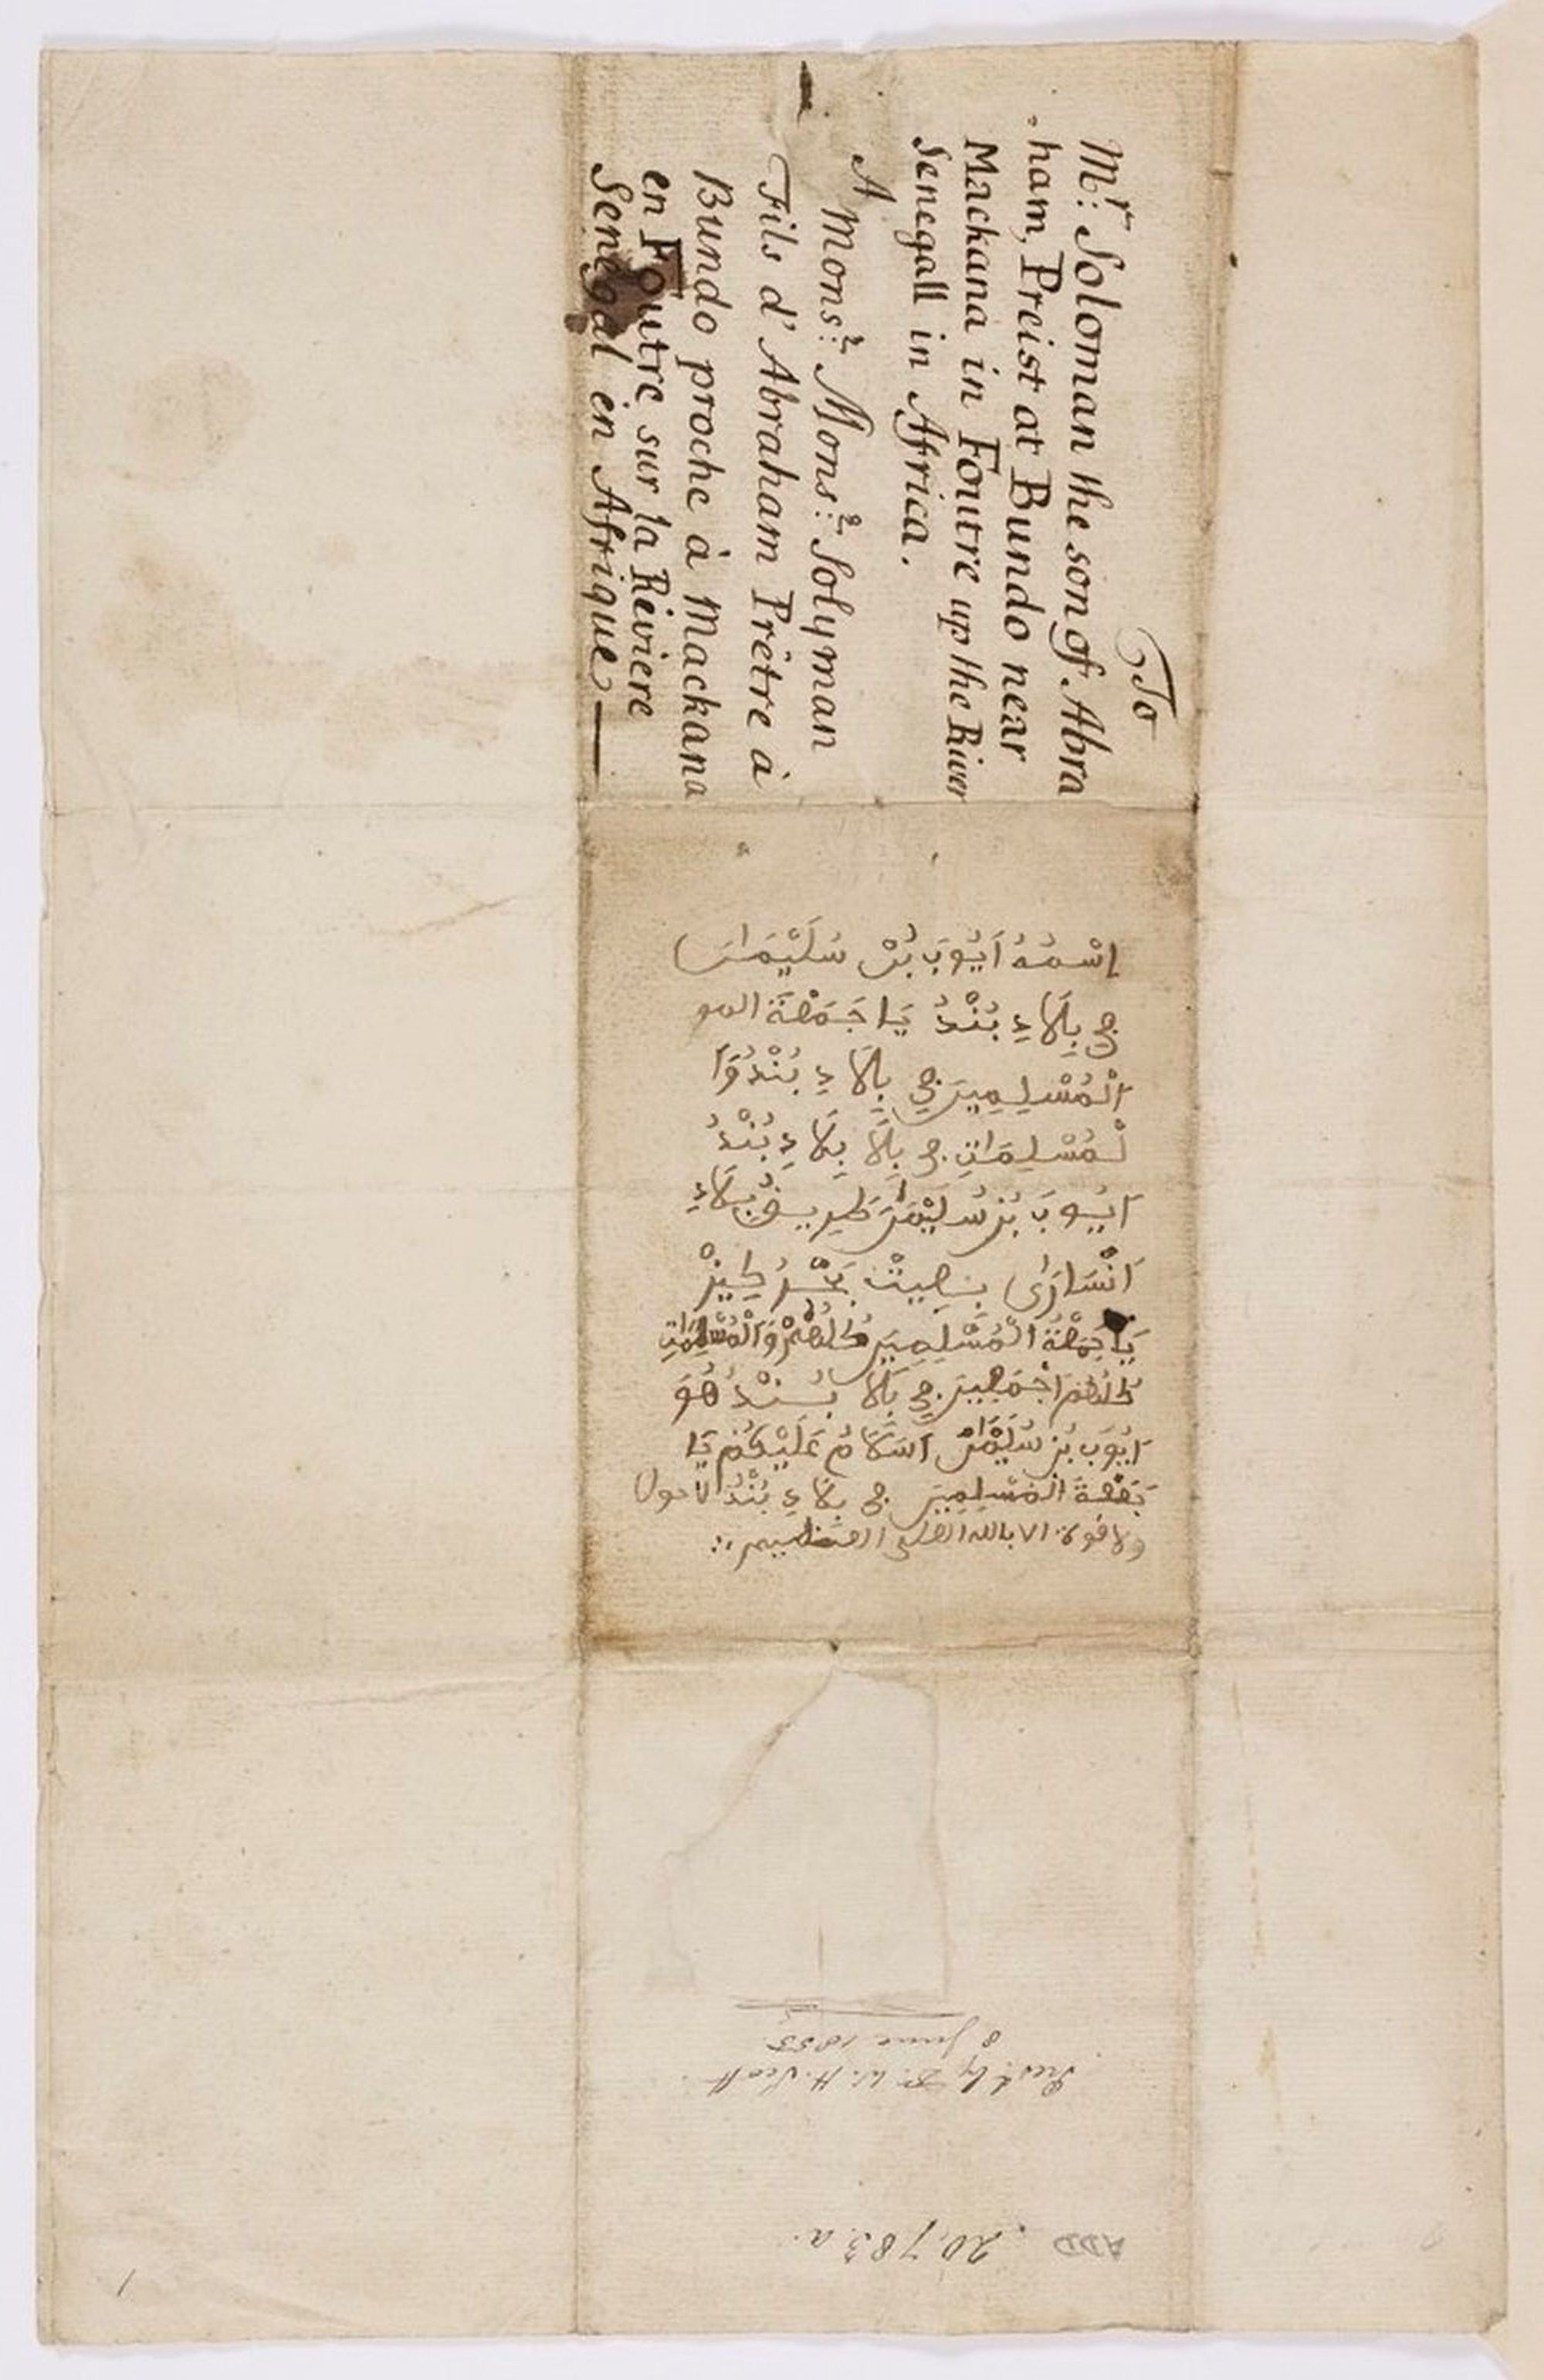 Letter written by Ayuba Suleiman Diallo probably while enslaved in Maryland, 1731-33